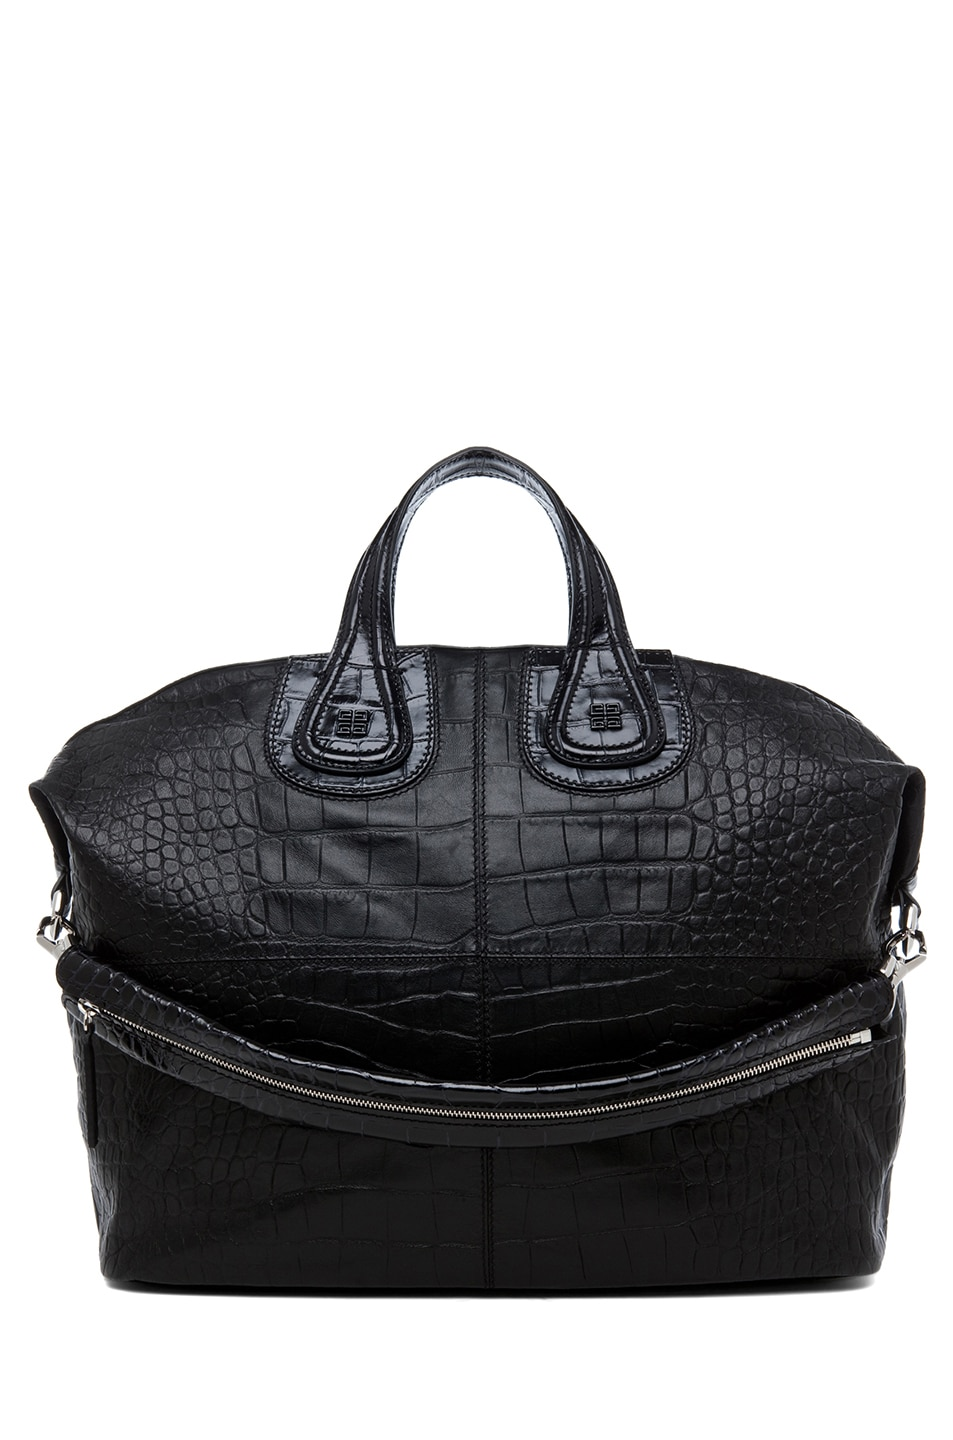 Image 1 of GIVENCHY Large Nightingale Stamped Croc in Black